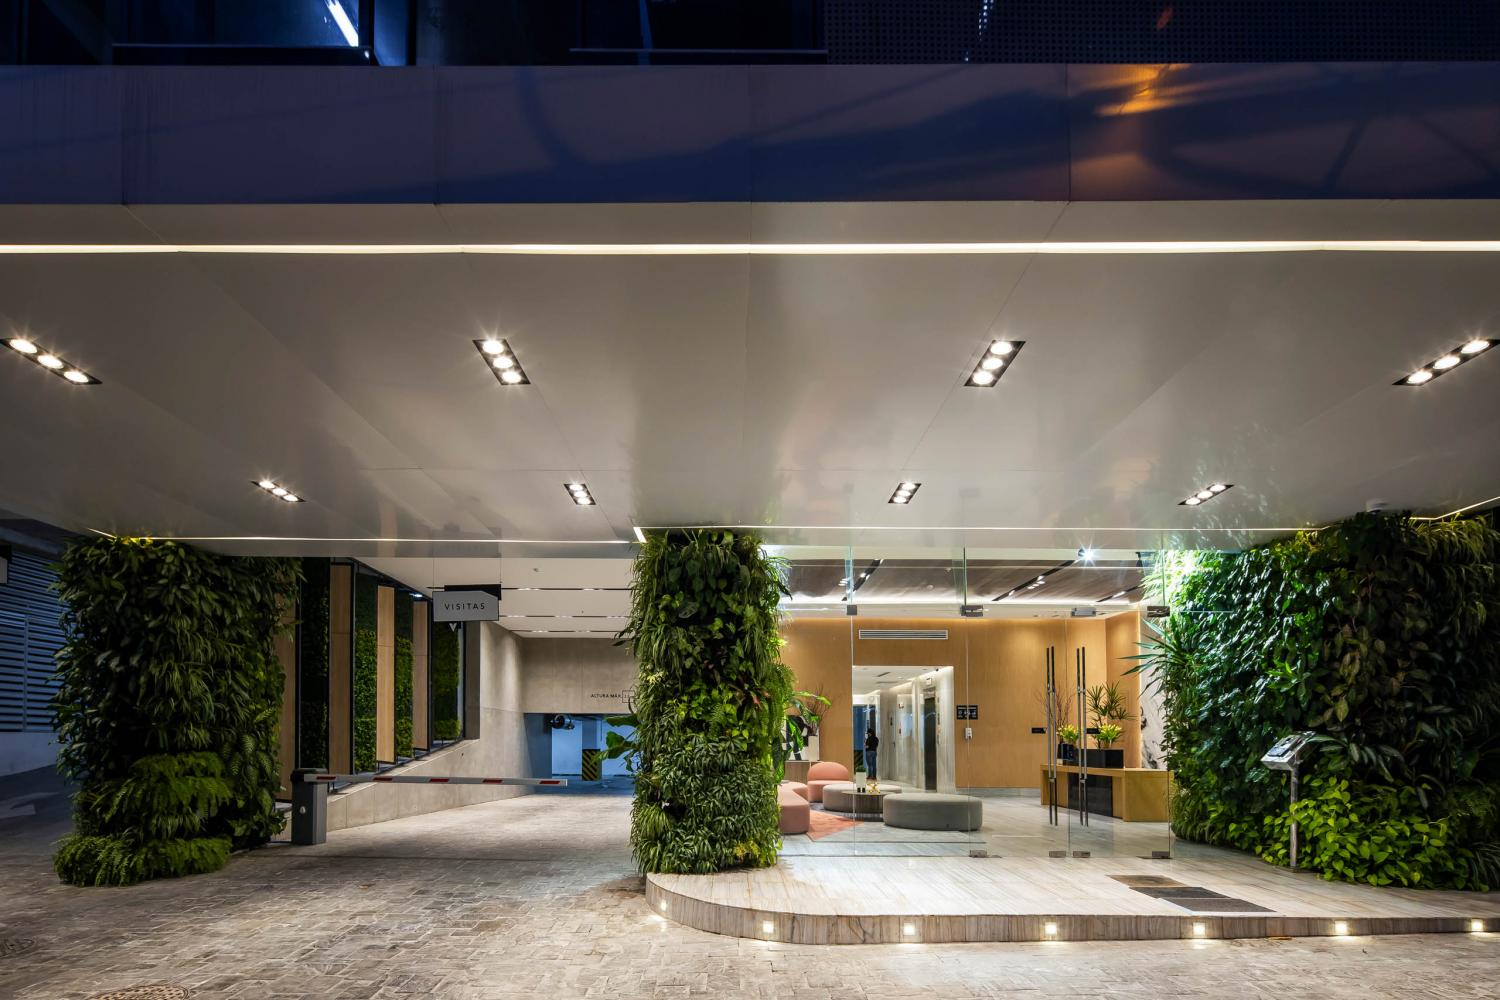 Laurameroni furnishing a luxury entrance hall of the Velure Tower in Panama, a modern interior decor with oak wood carved wall panels